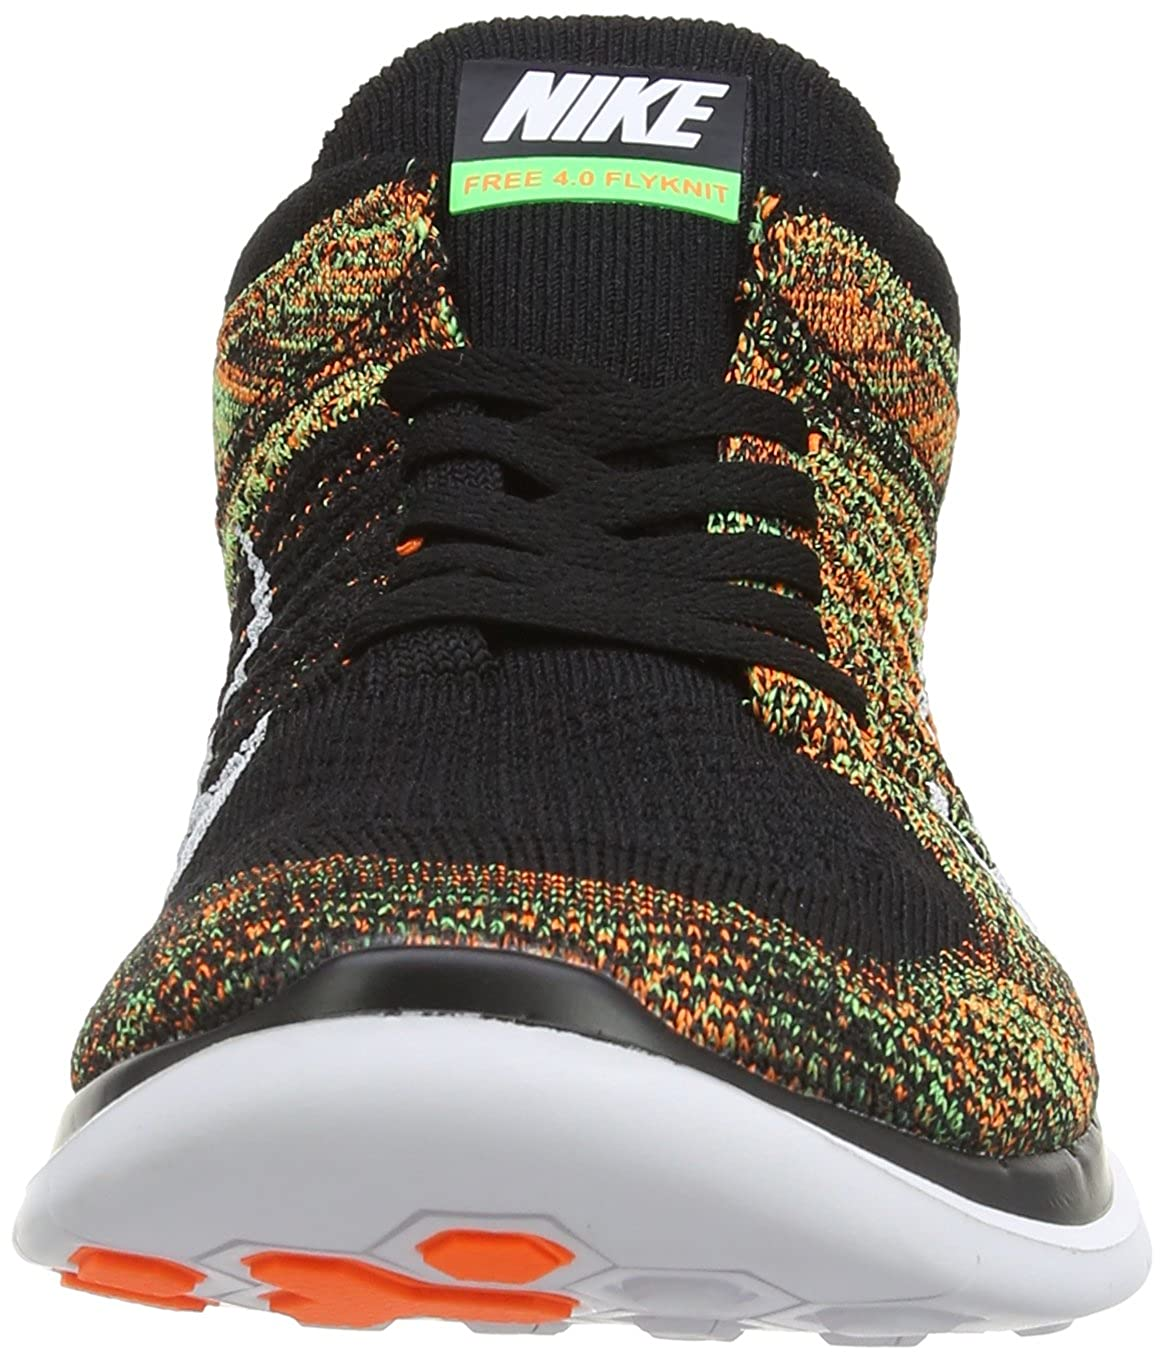 finest selection ed6dc 56ddc Nike Free 4.0 Flyknit, Mens Running Shoes Amazon.co.uk Shoes